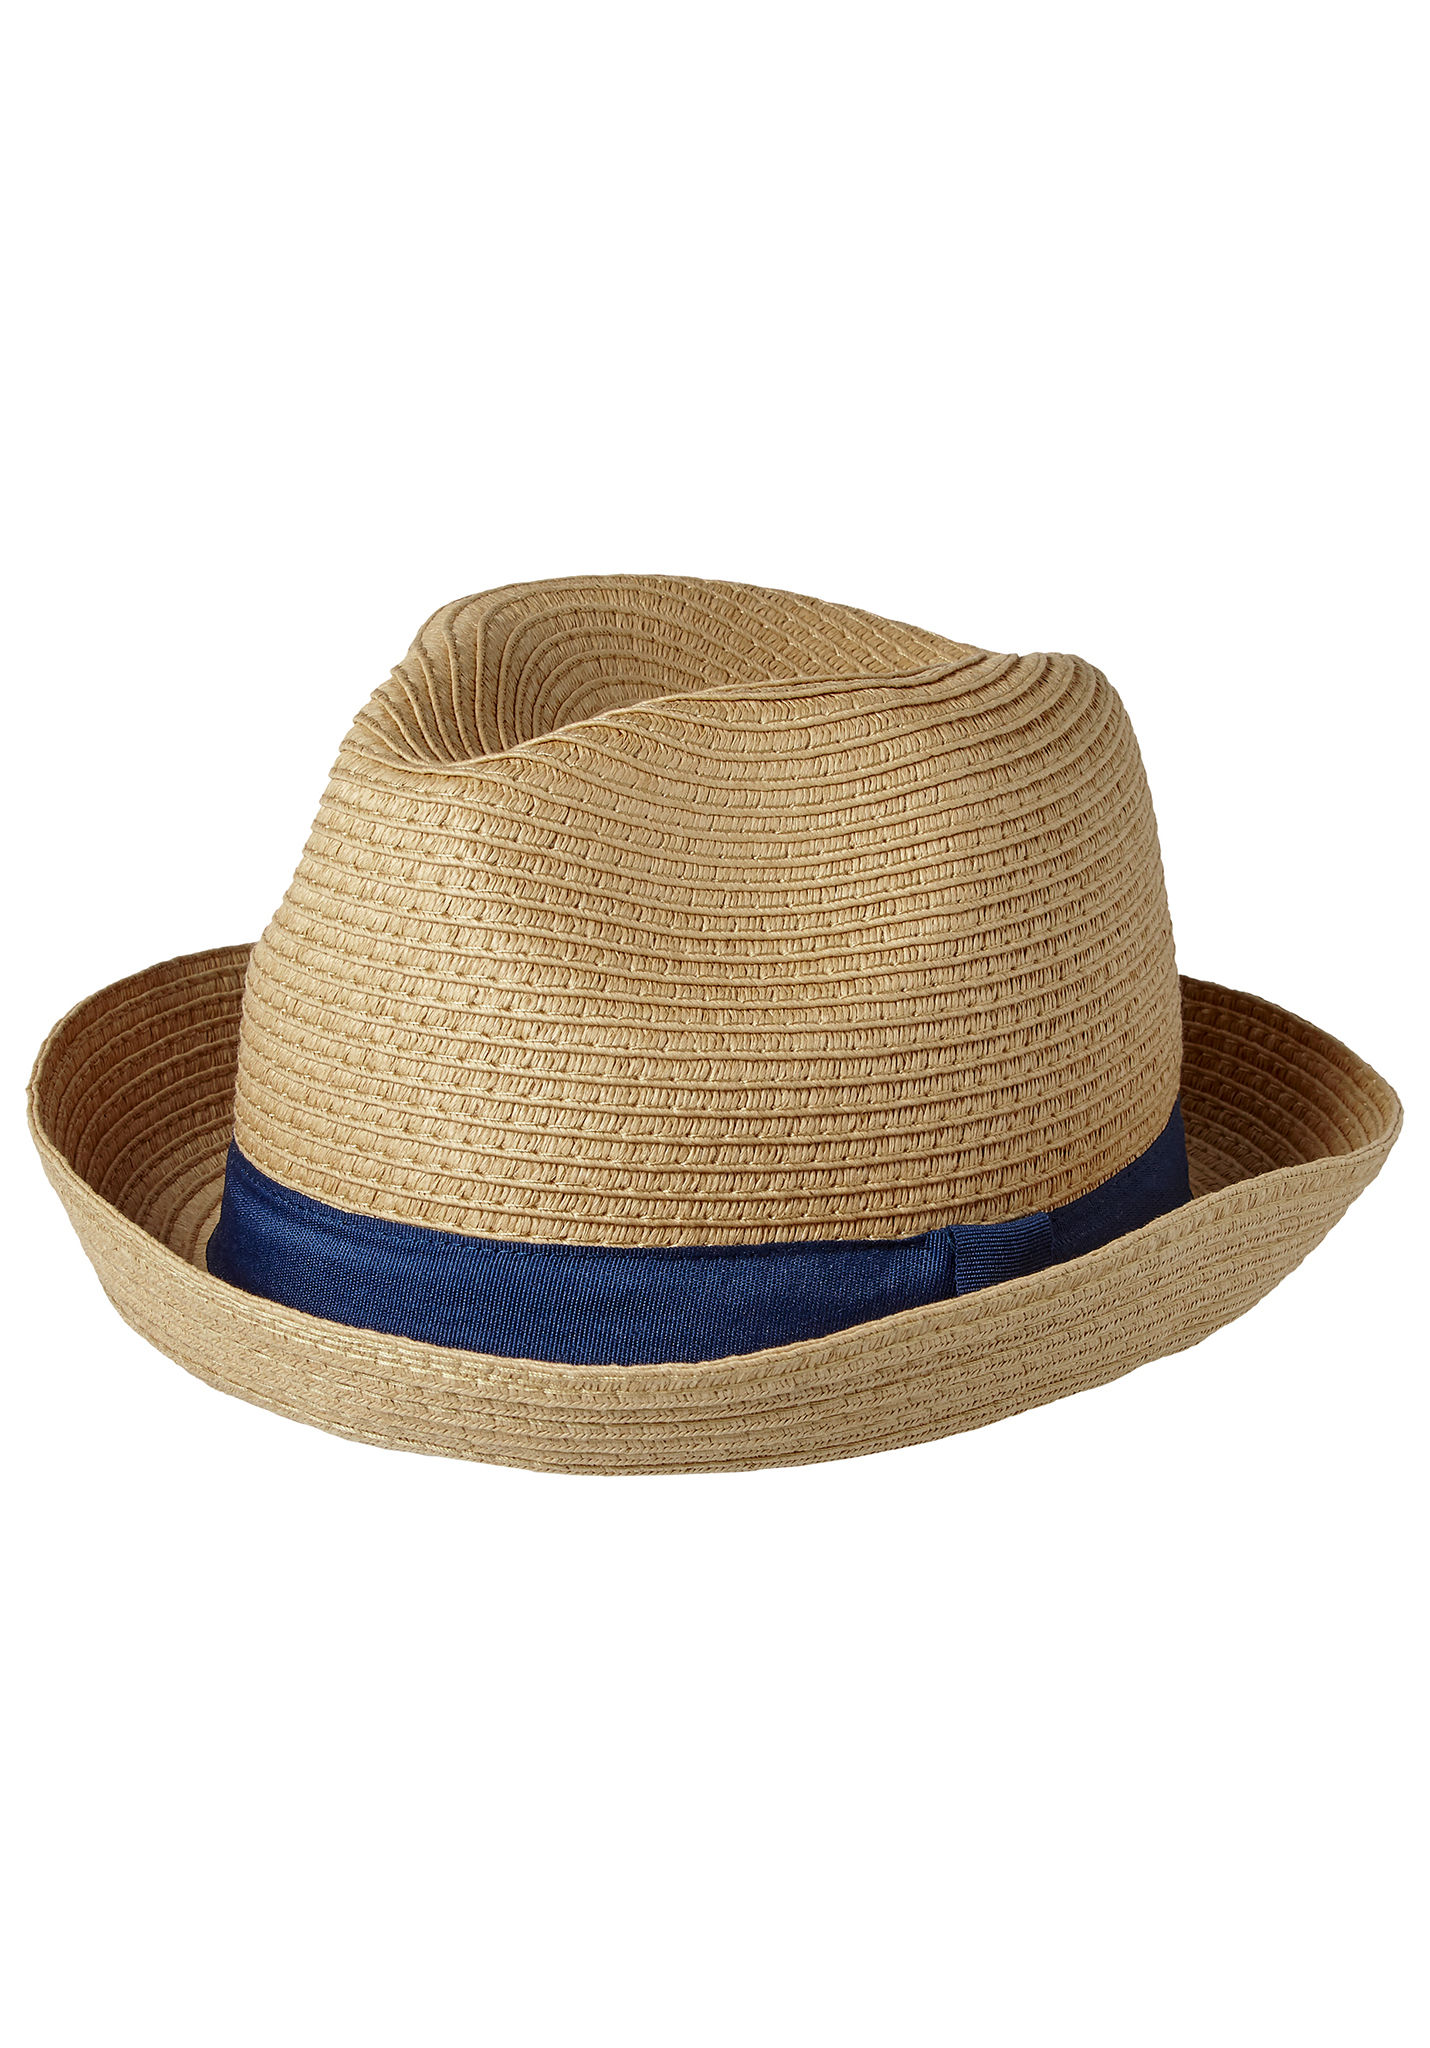 O Neill Festival Fedora - Hat for Men - Beige - Planet Sports 852bb9cfd13